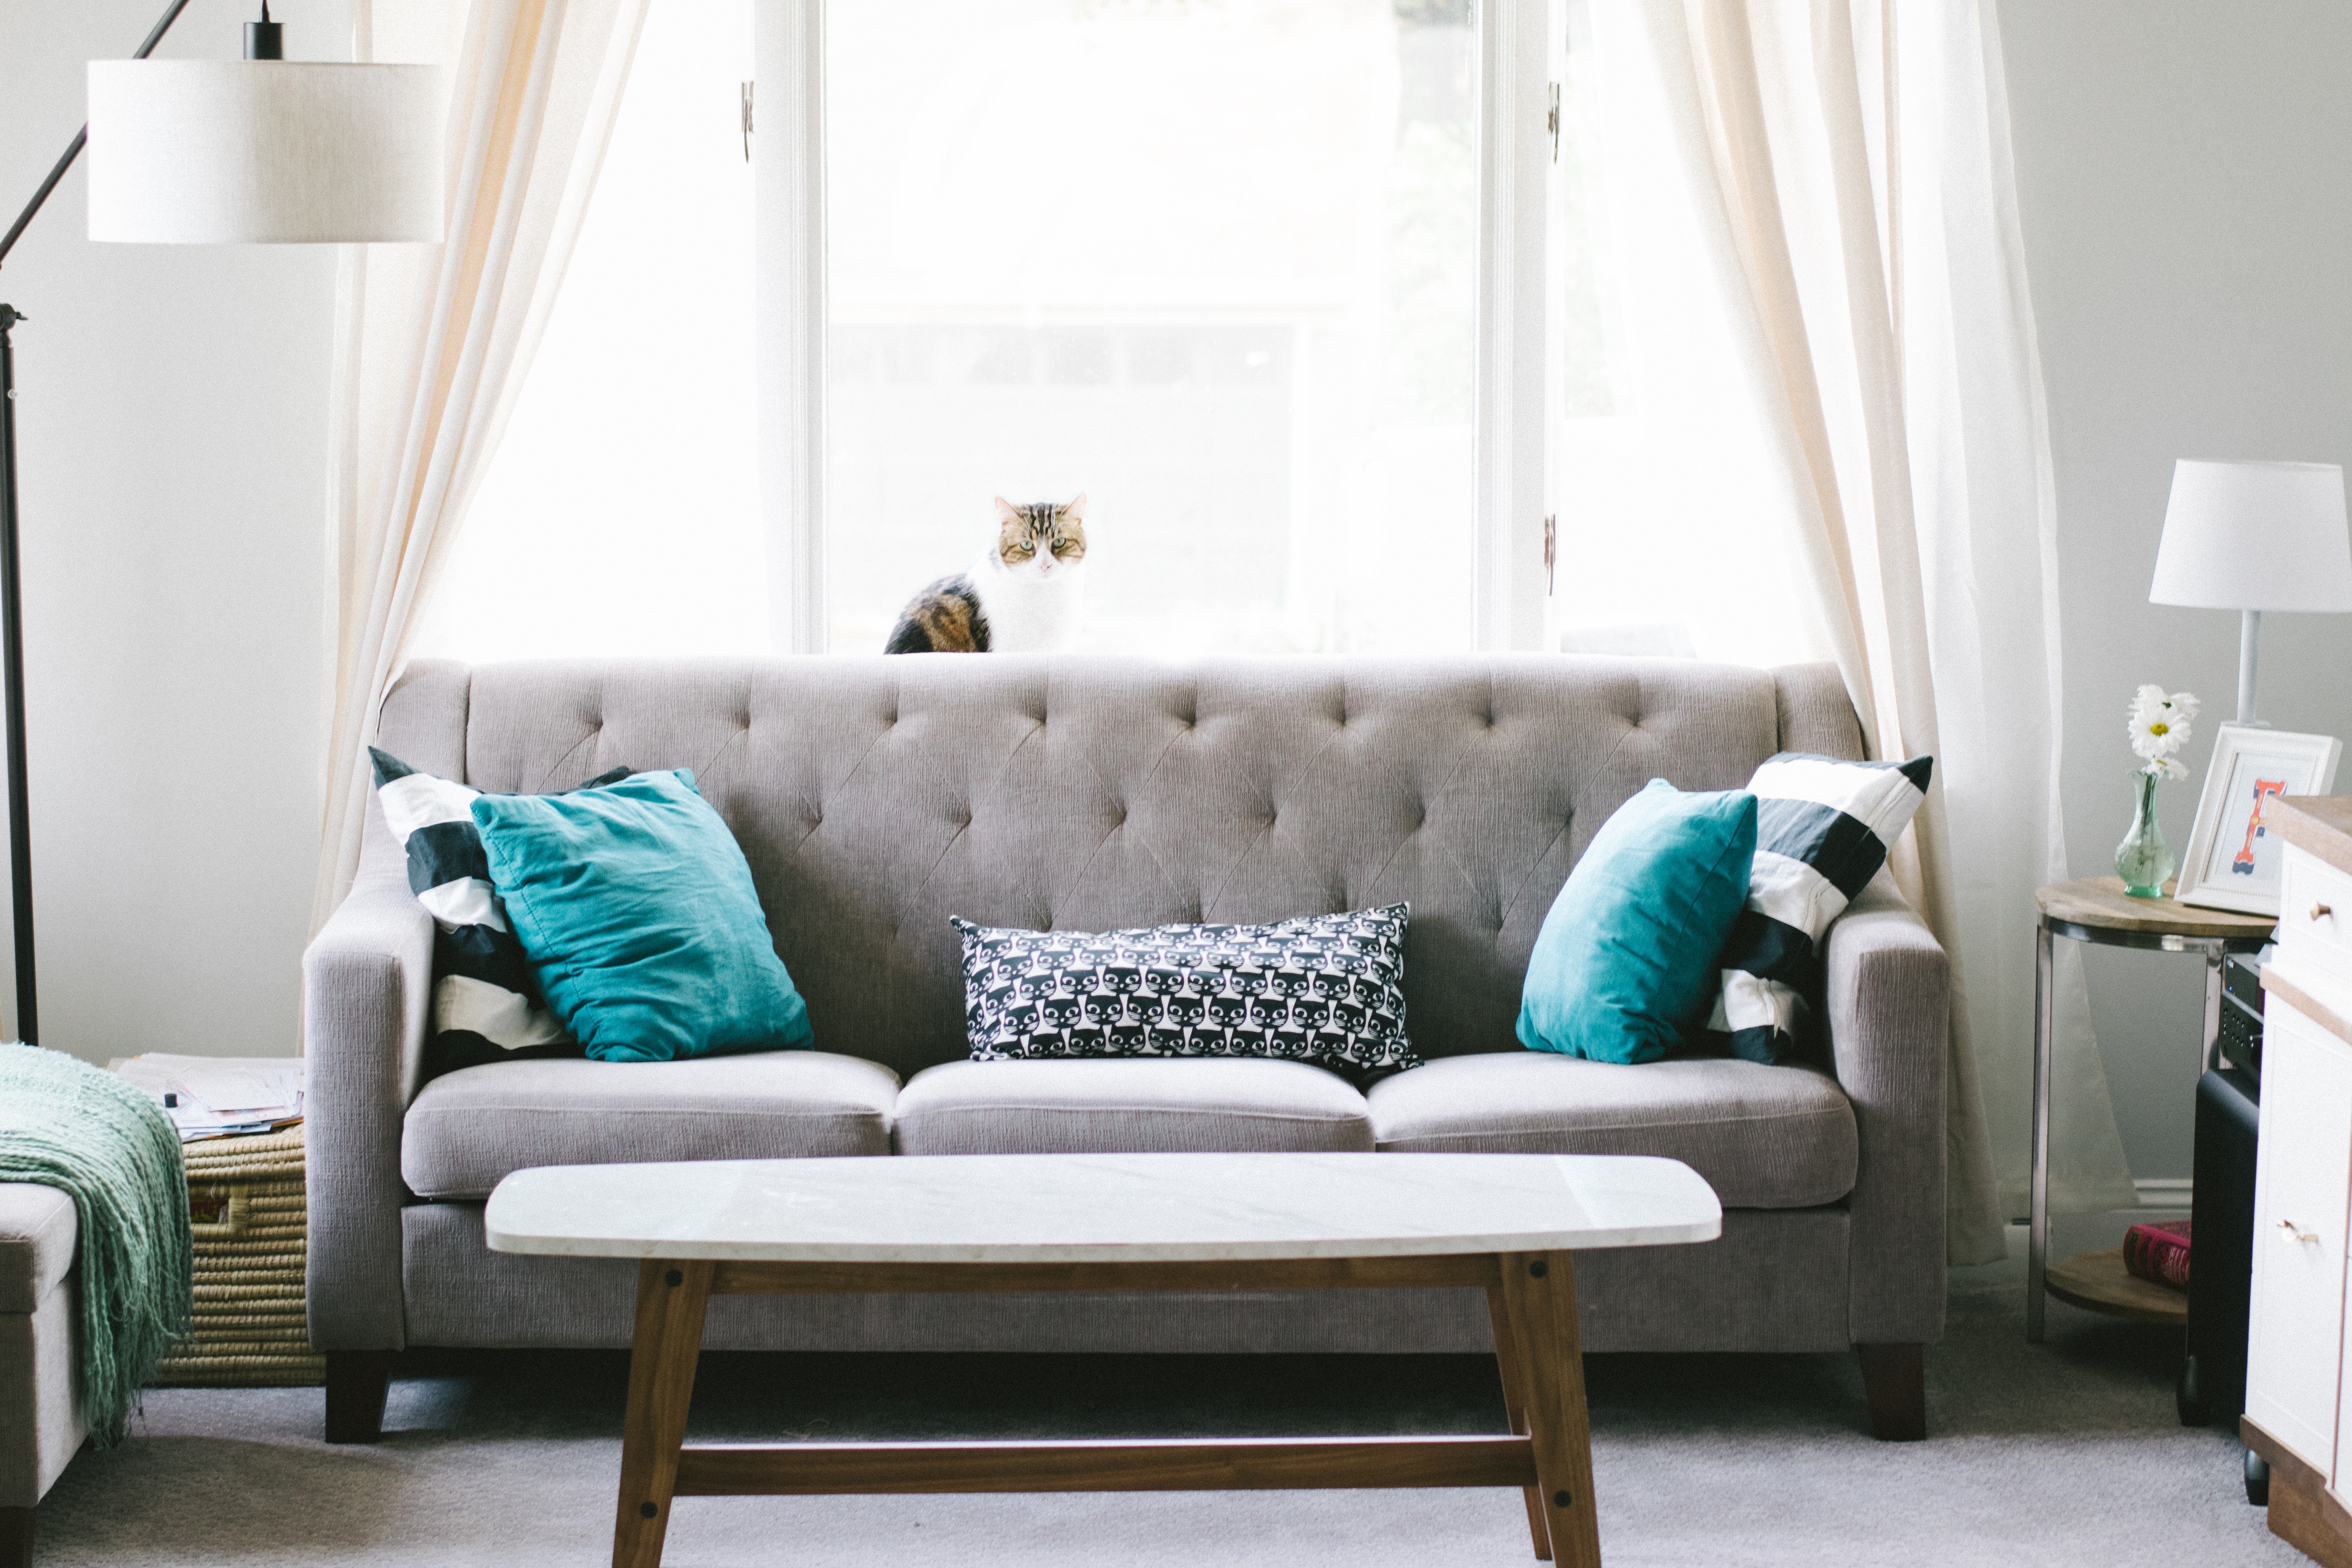 Living room with grey 3-seater sofa and turquoise cushions